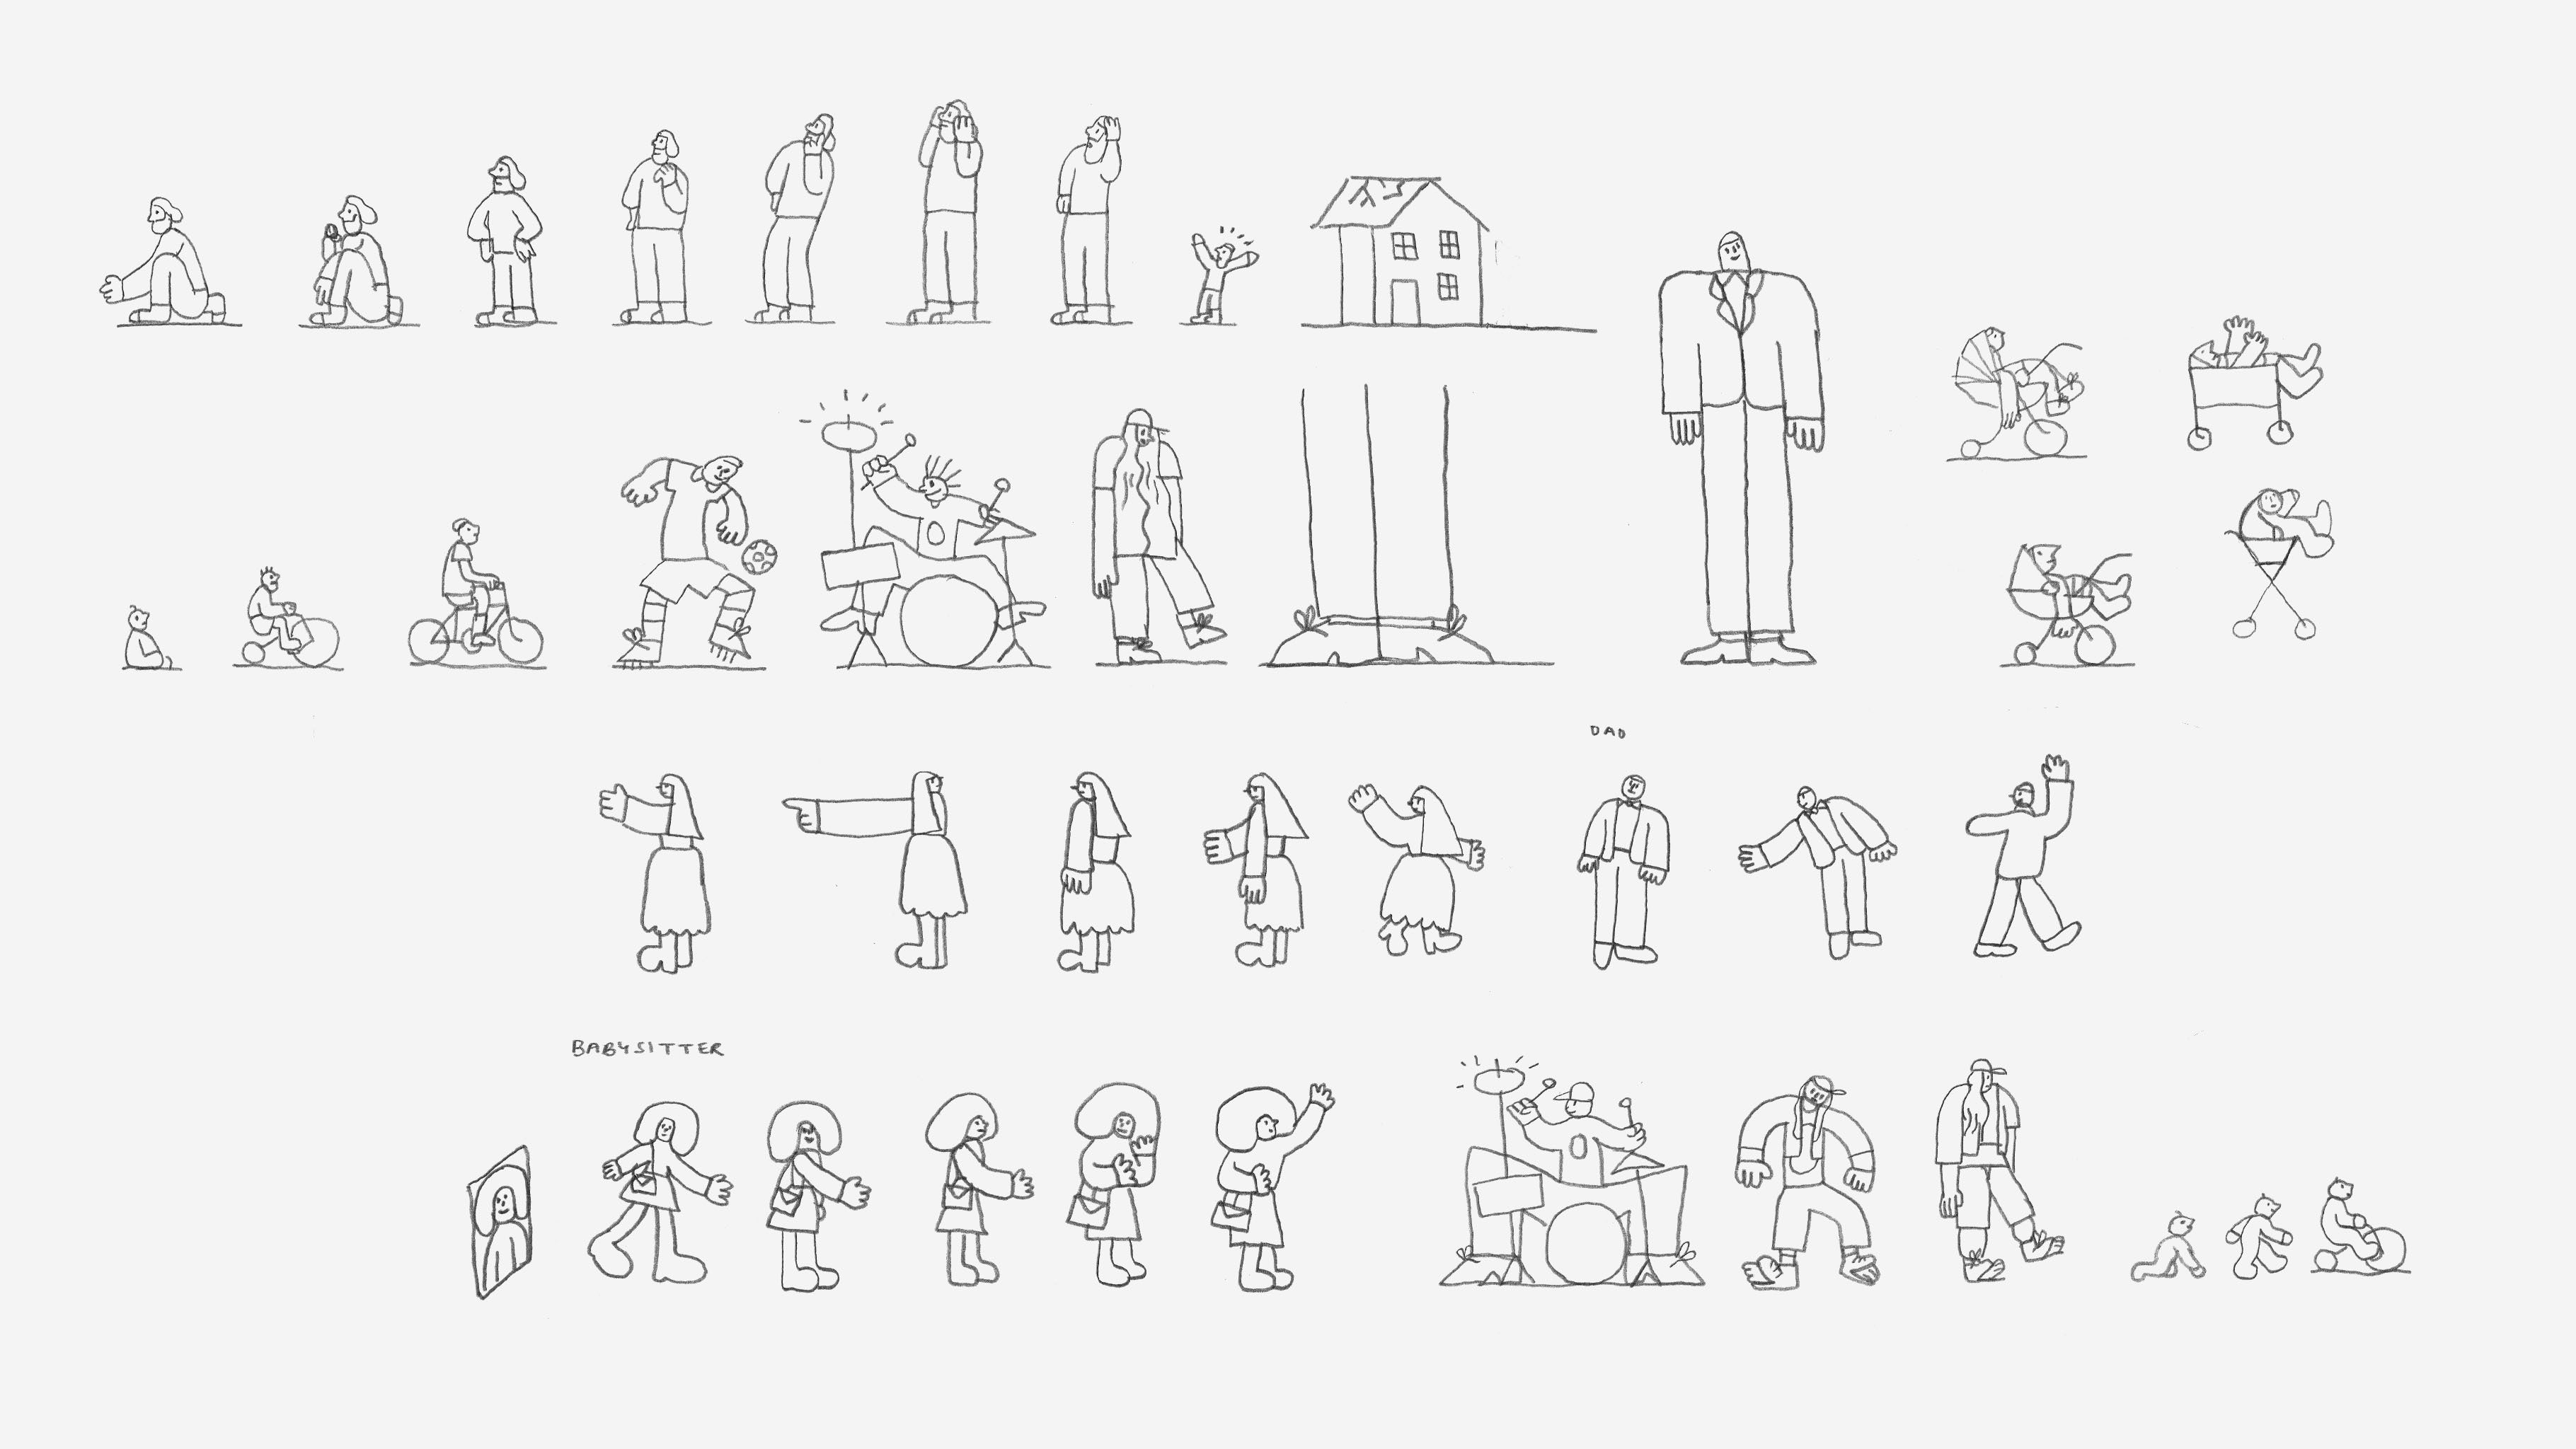 Facebook Groups James Graham Sketches Storyboards 02